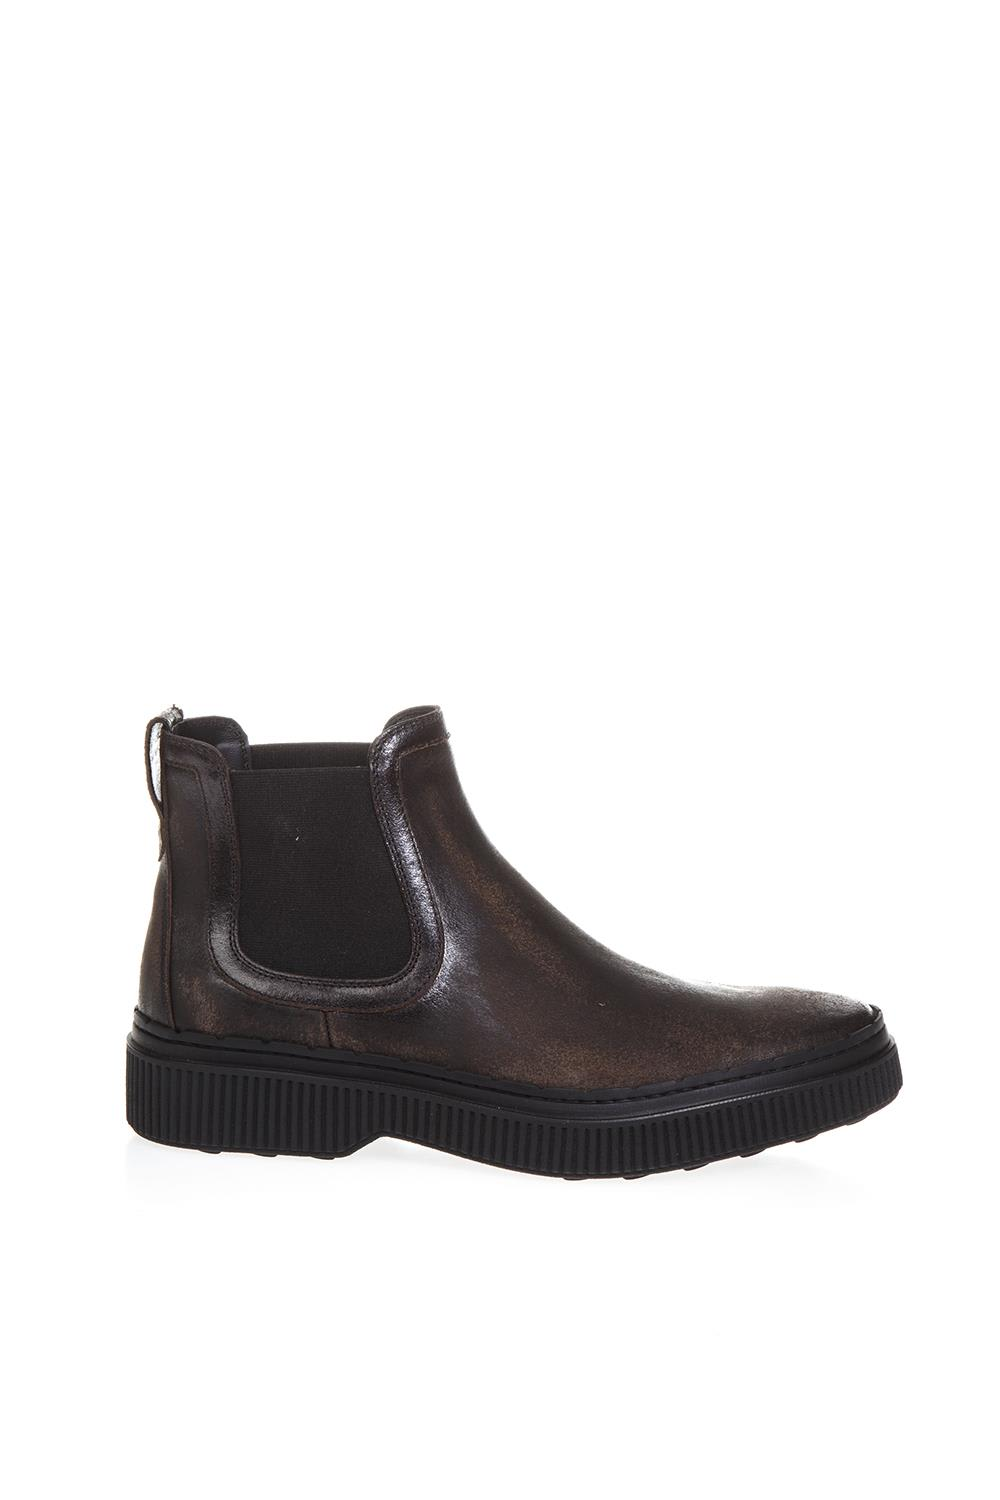 Tods Brown Leather Boots